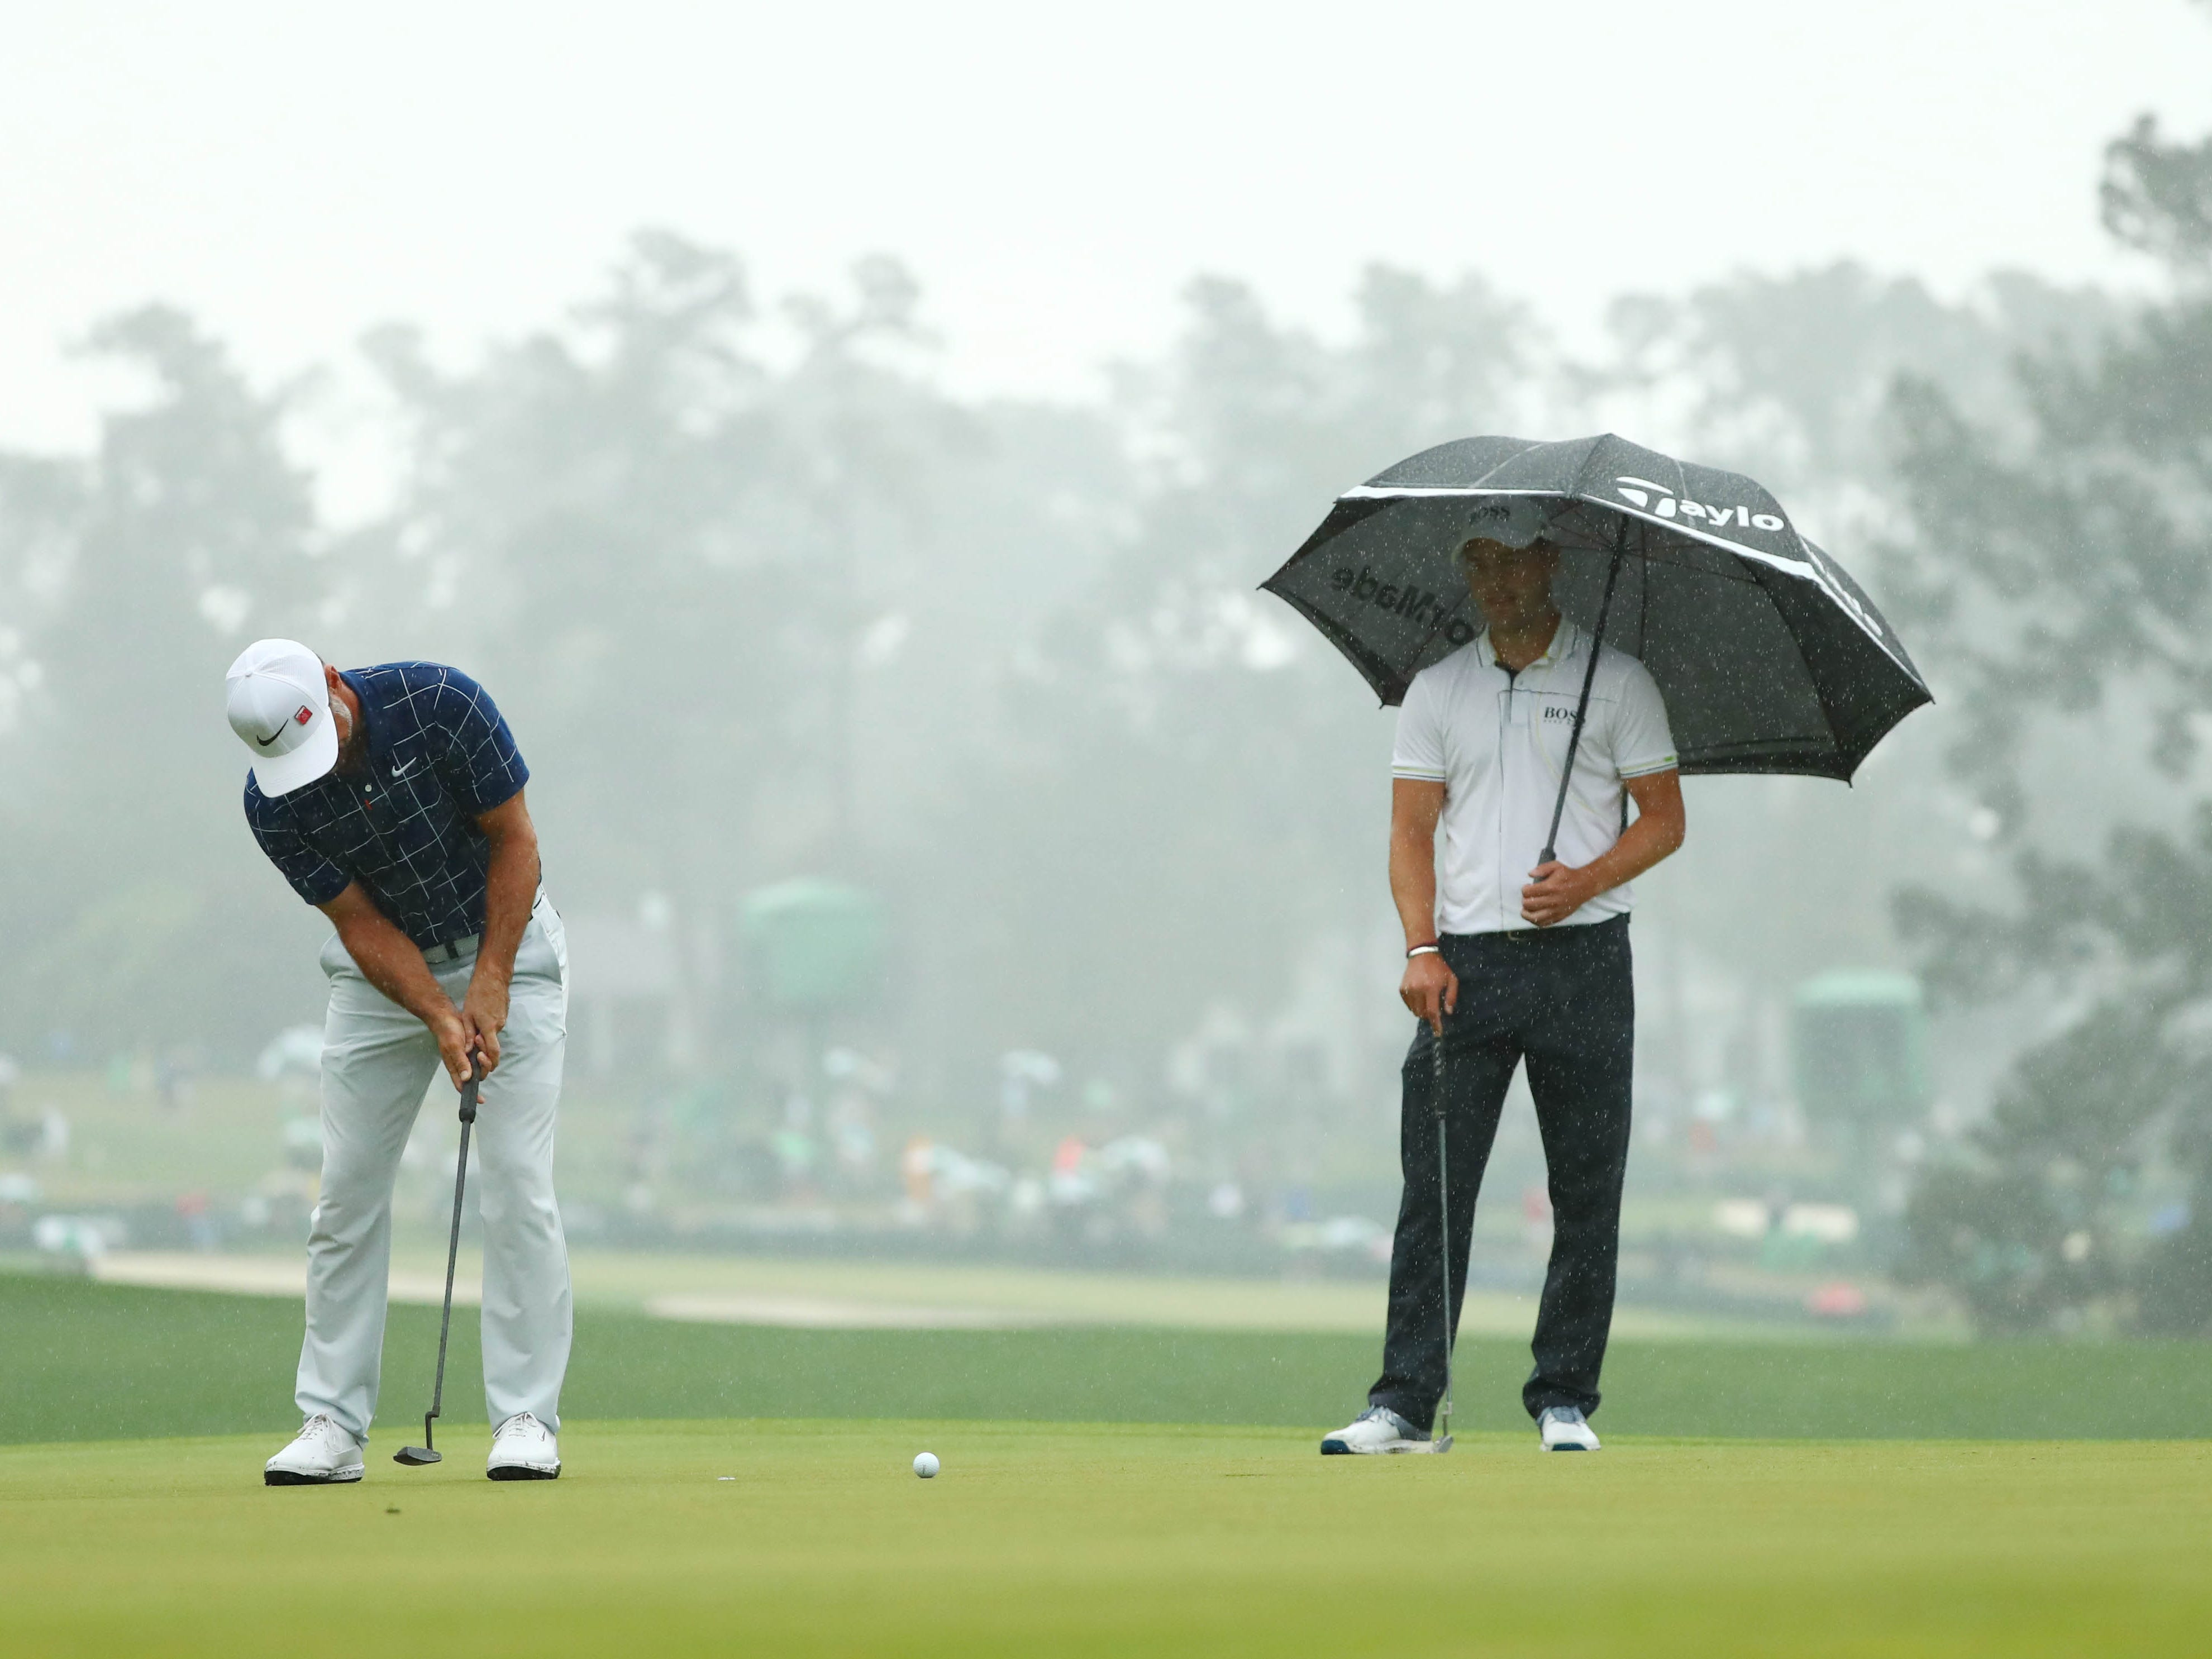 Trevor Immelman putts on the first green as Martin Kaymer stands under an umbrella during the second round of the Masters.